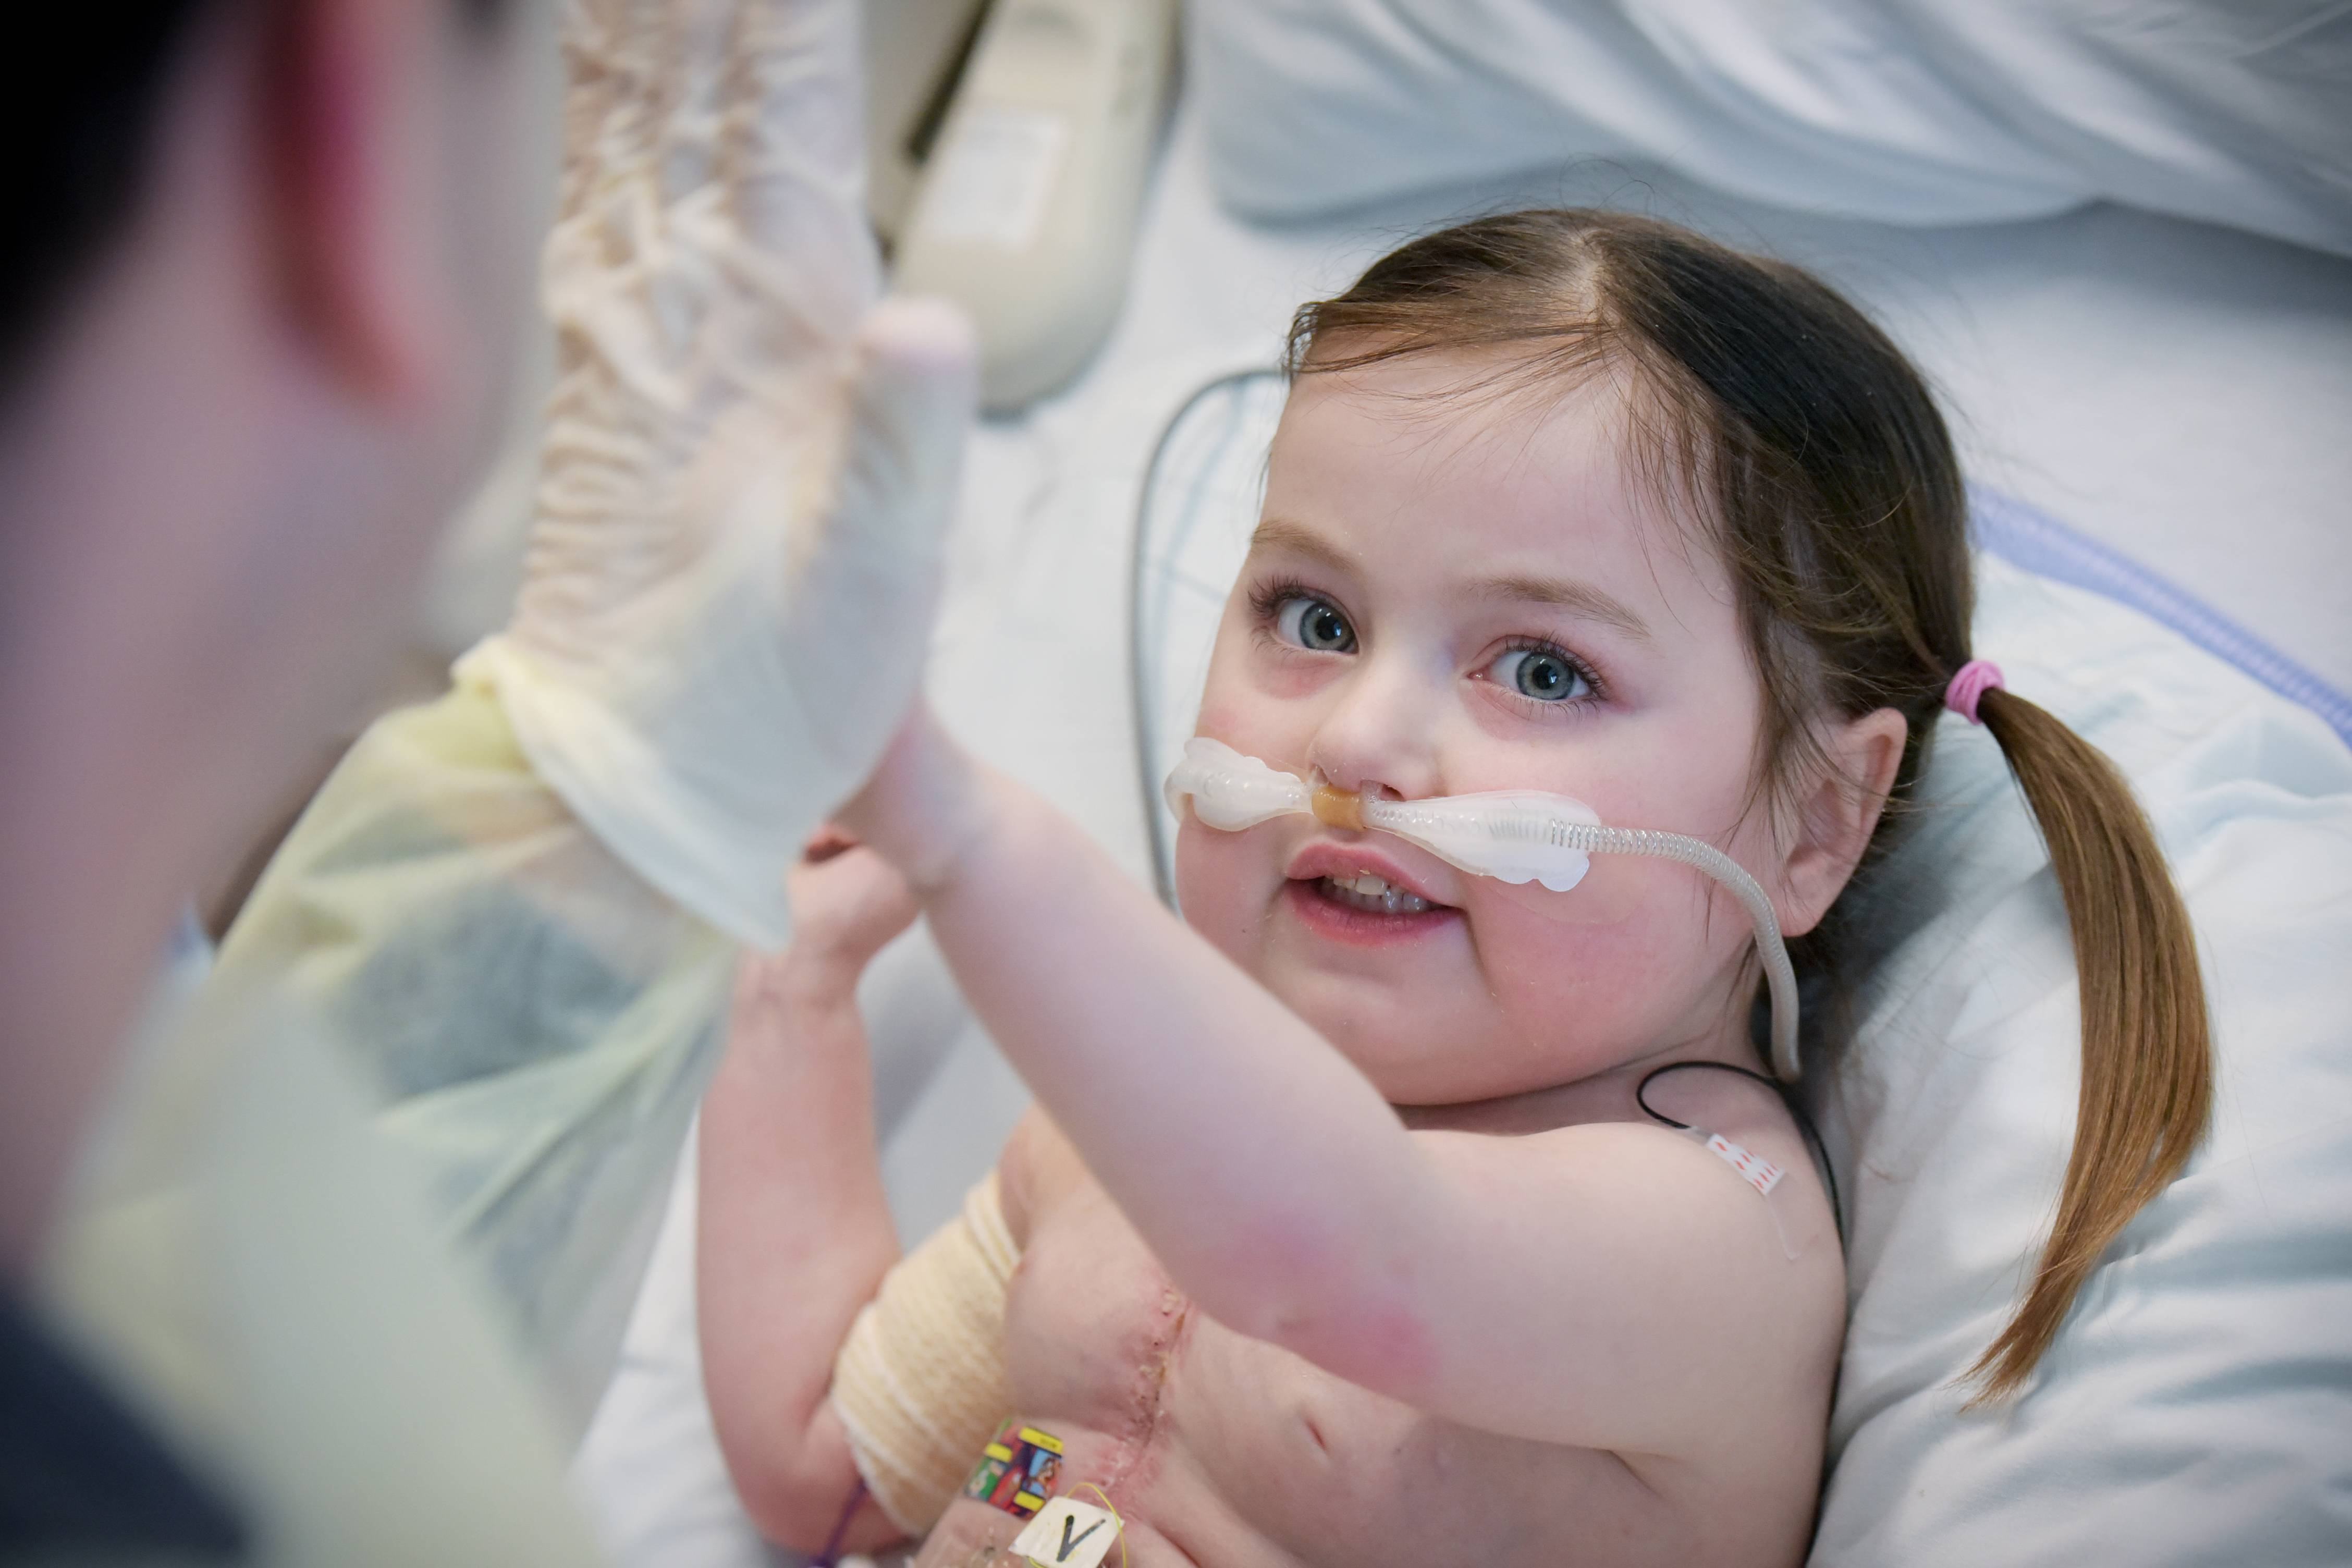 Lucy Shannon gives Dr. Matt Cornicelli a high-five at Ann & Robert H. Lurie Children's Hospital.